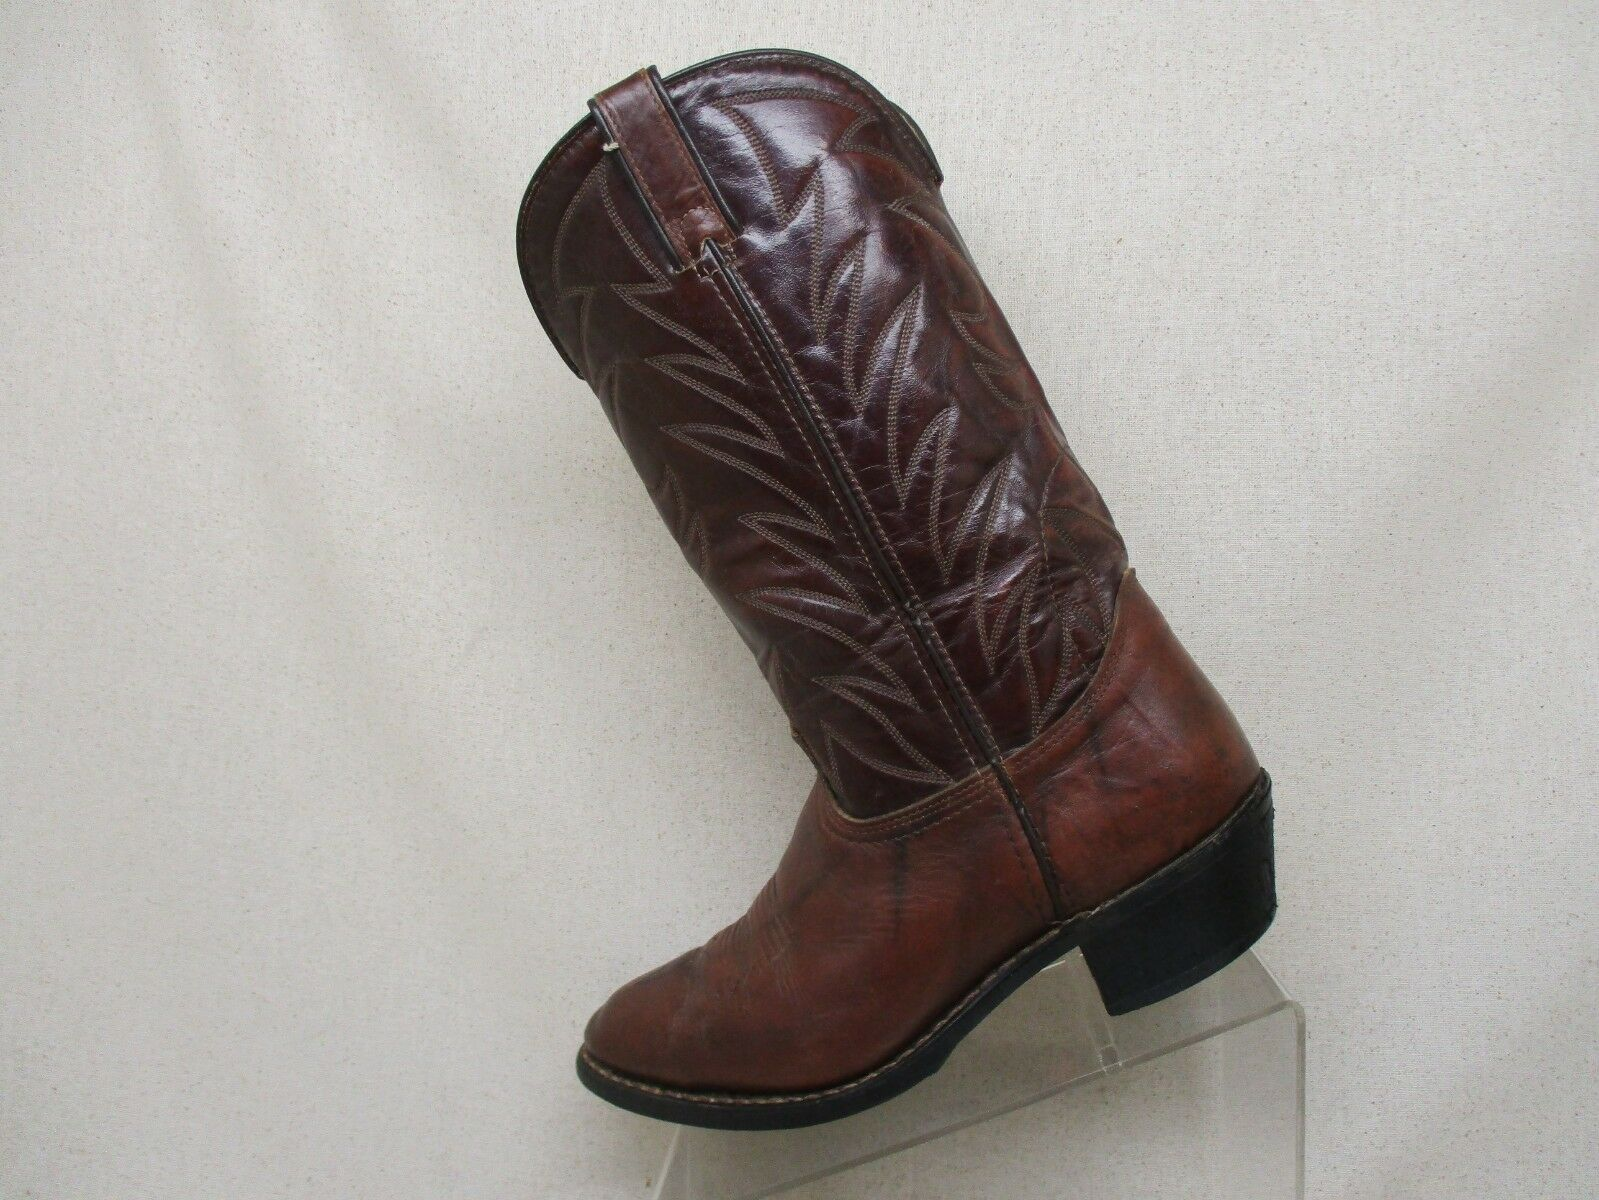 DURANGO Brown Leather Cowboy Western Boots Mens Size 9 D Style 07092